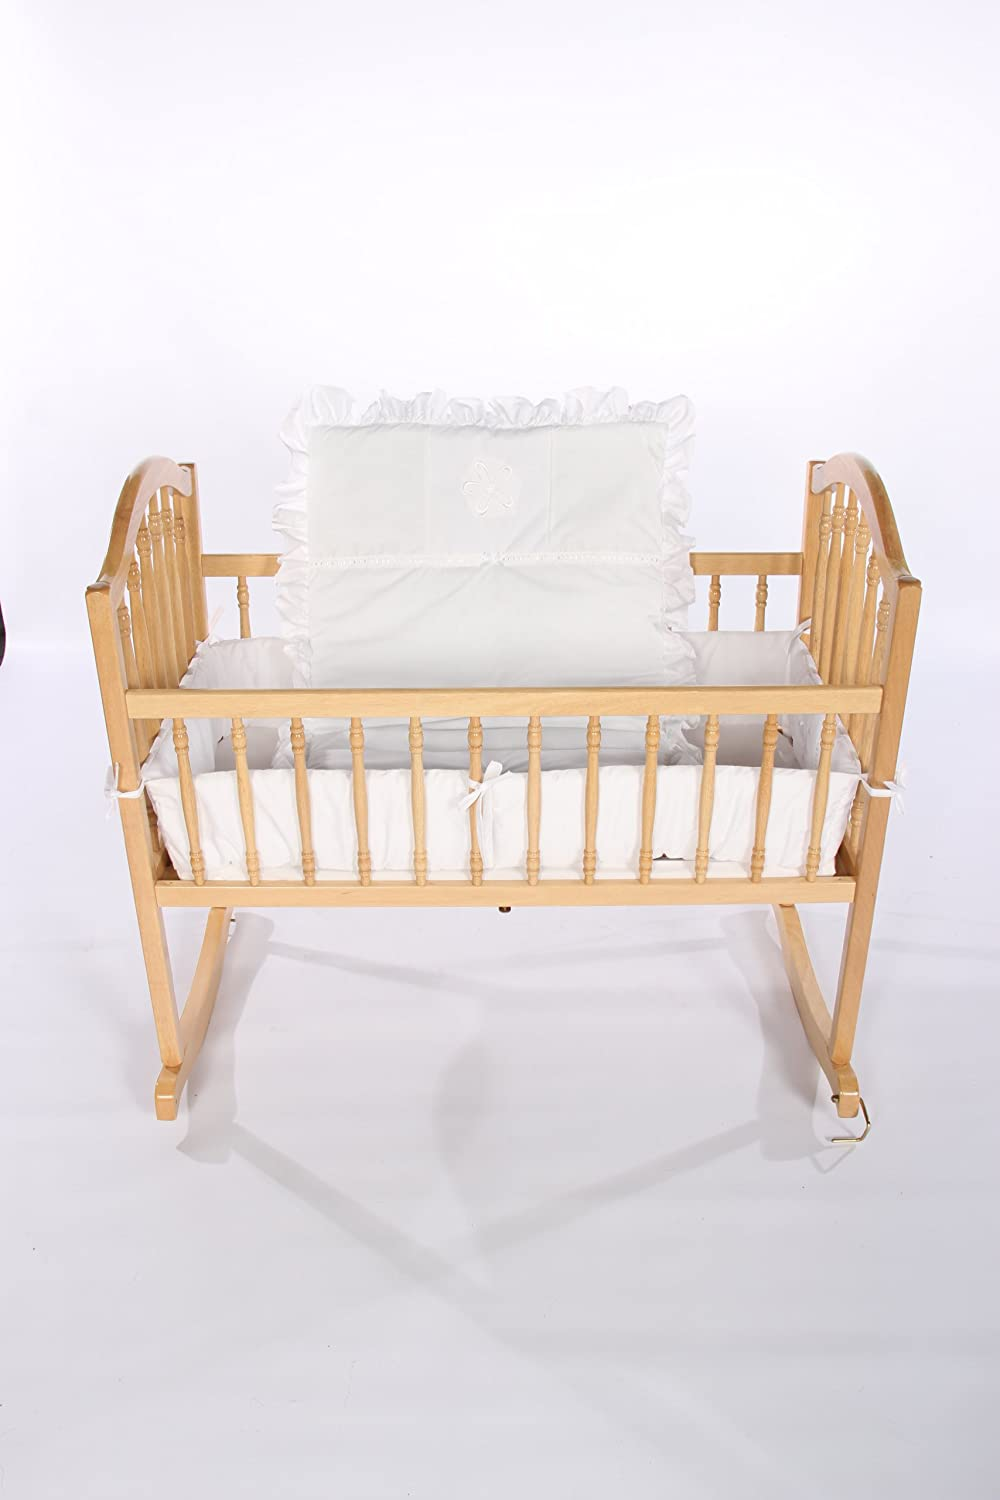 Baby Doll Bedding Solid with Flower Applique Cradle Bedding Set, White by BabyDoll Bedding   B004WN8SDW